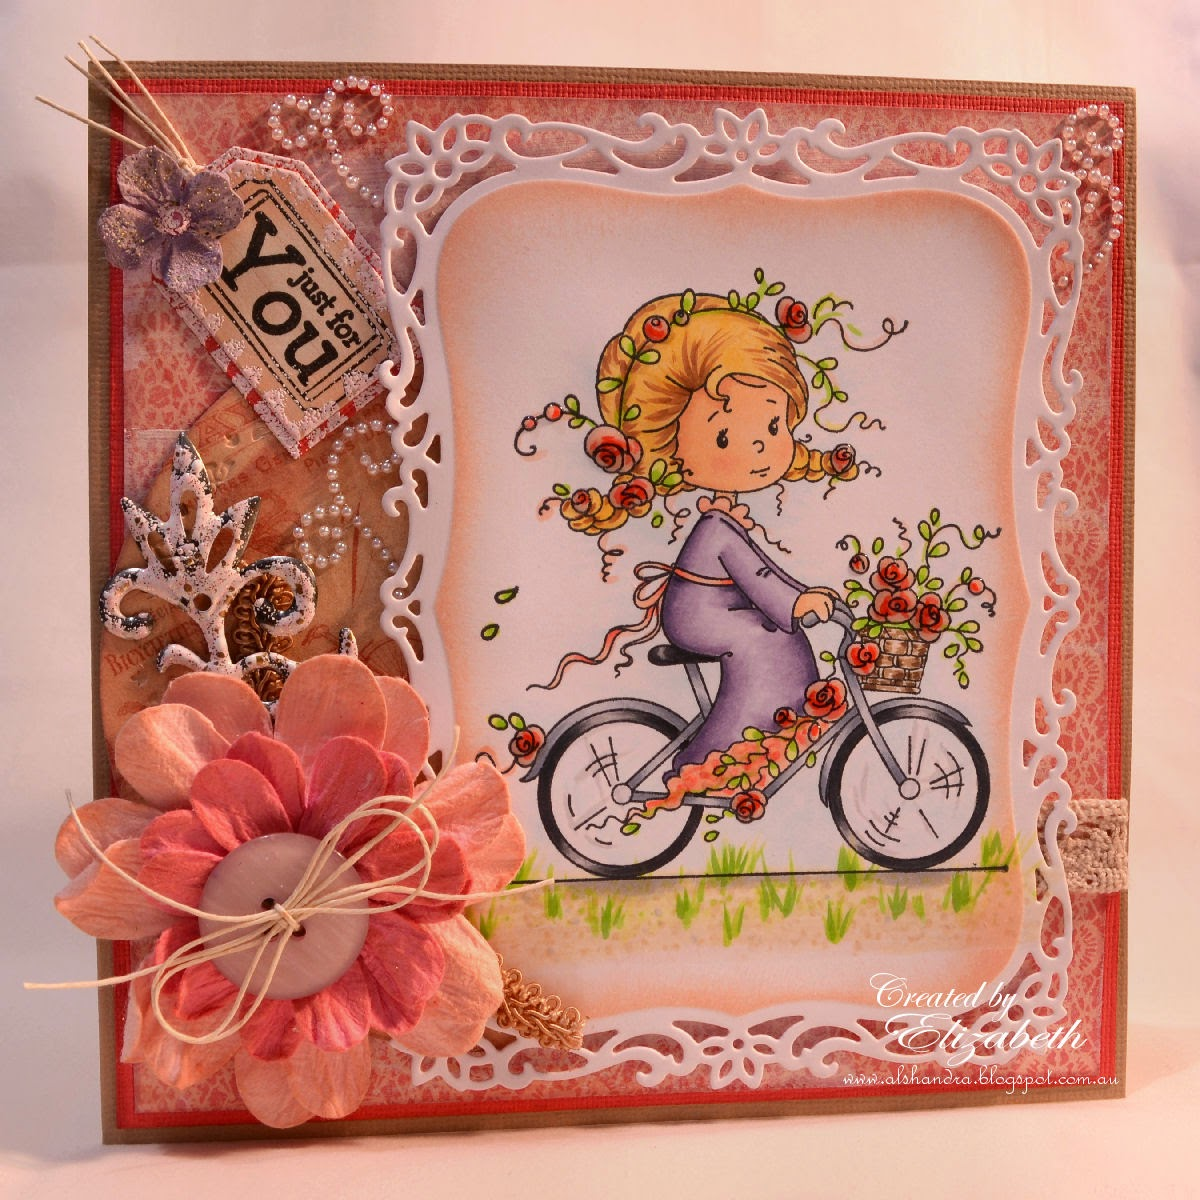 Elizabeth Whisson, Whimsy Stamps, Wee Stamps, Rose's Bike Ride, flowers, heat embossing, copics, copic colouring, copic coloring, copic sketch, just for you, handmade card